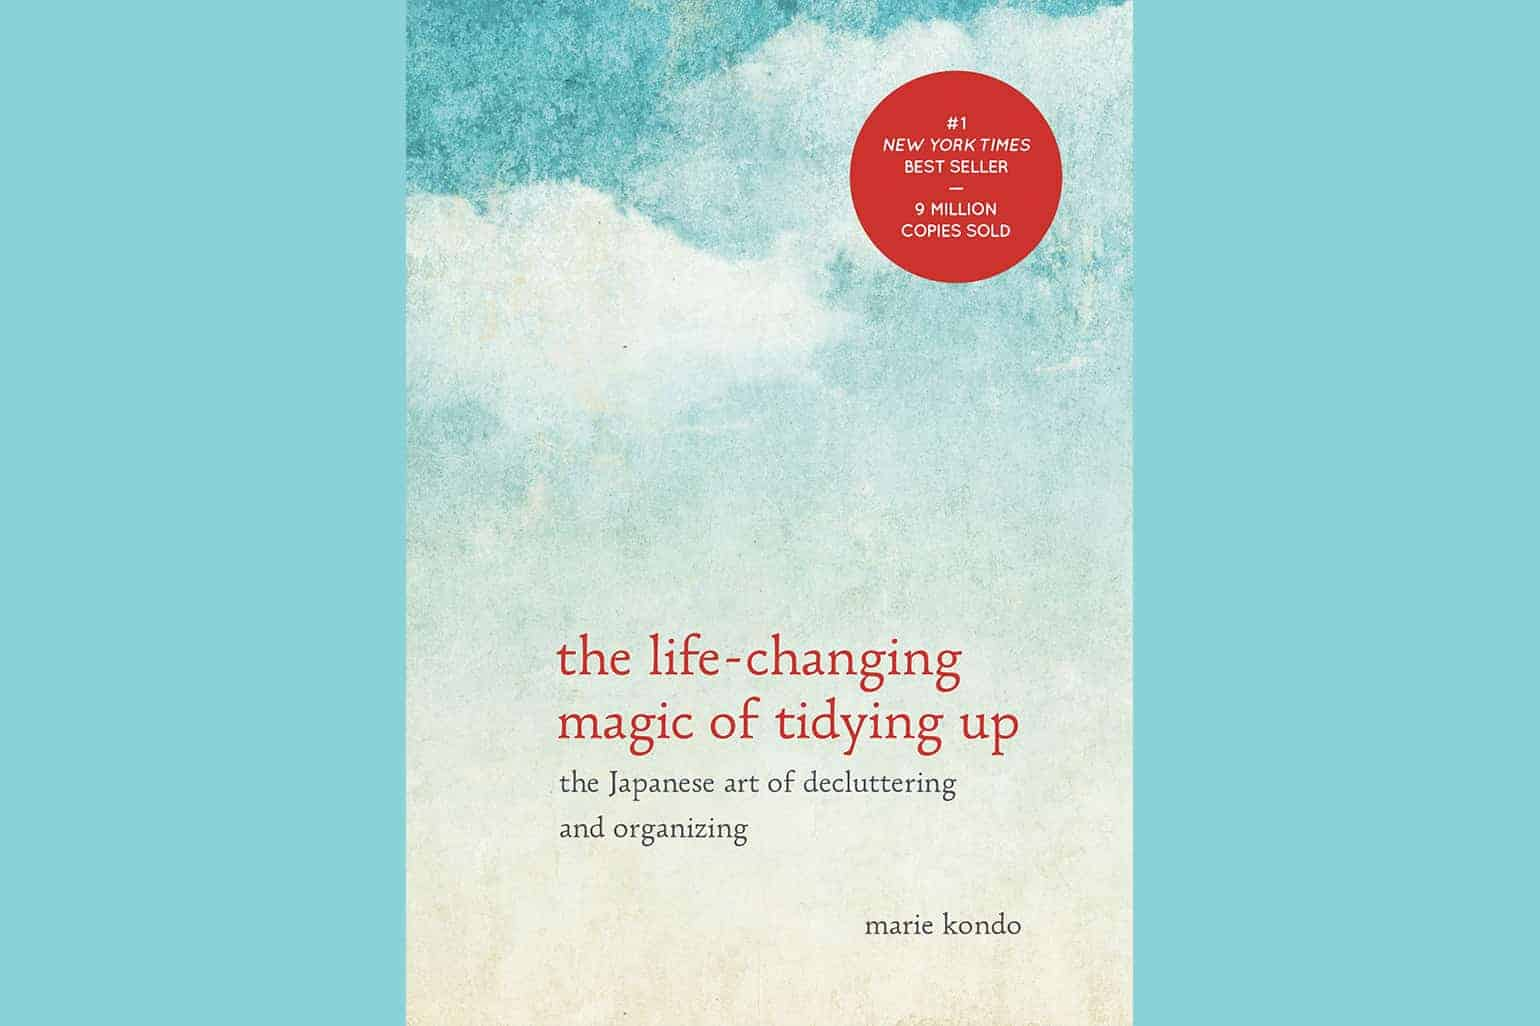 The Life Changing Magic Of Tidying Up The Japanese Art Of Decluttering And Organizing Marie Kondo